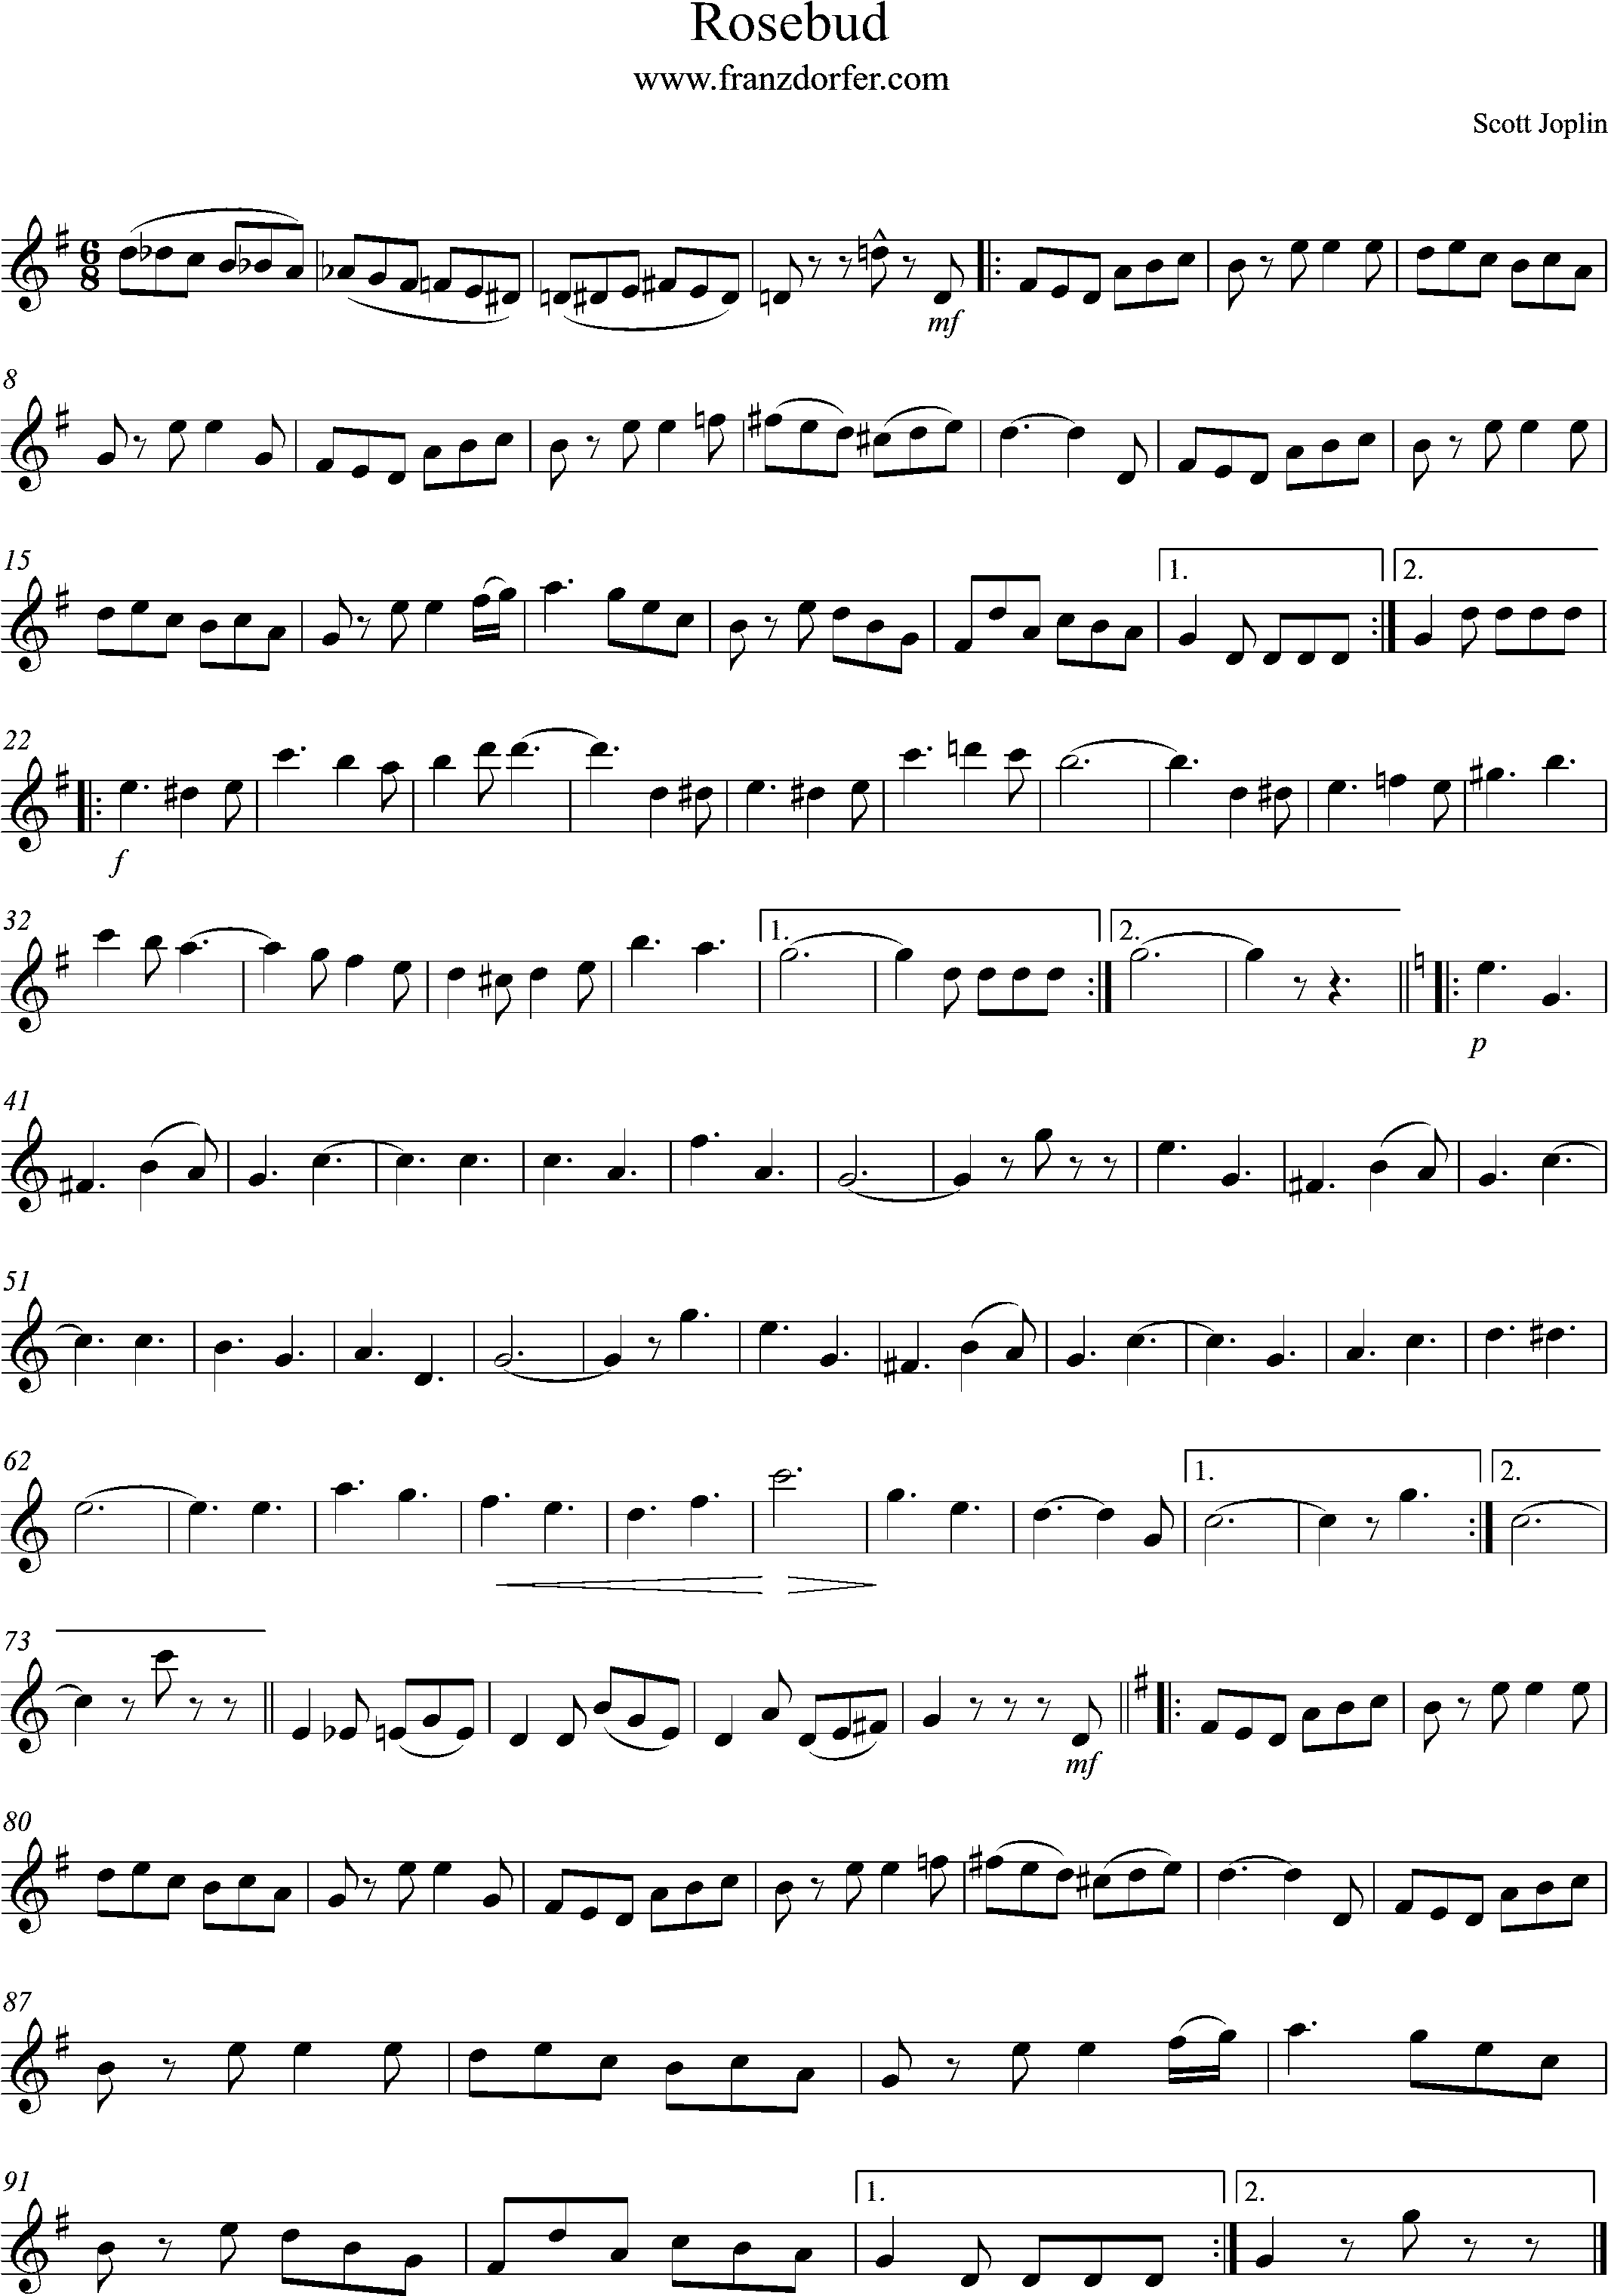 Solopart, sheetmusic- Rosebus, G-Major